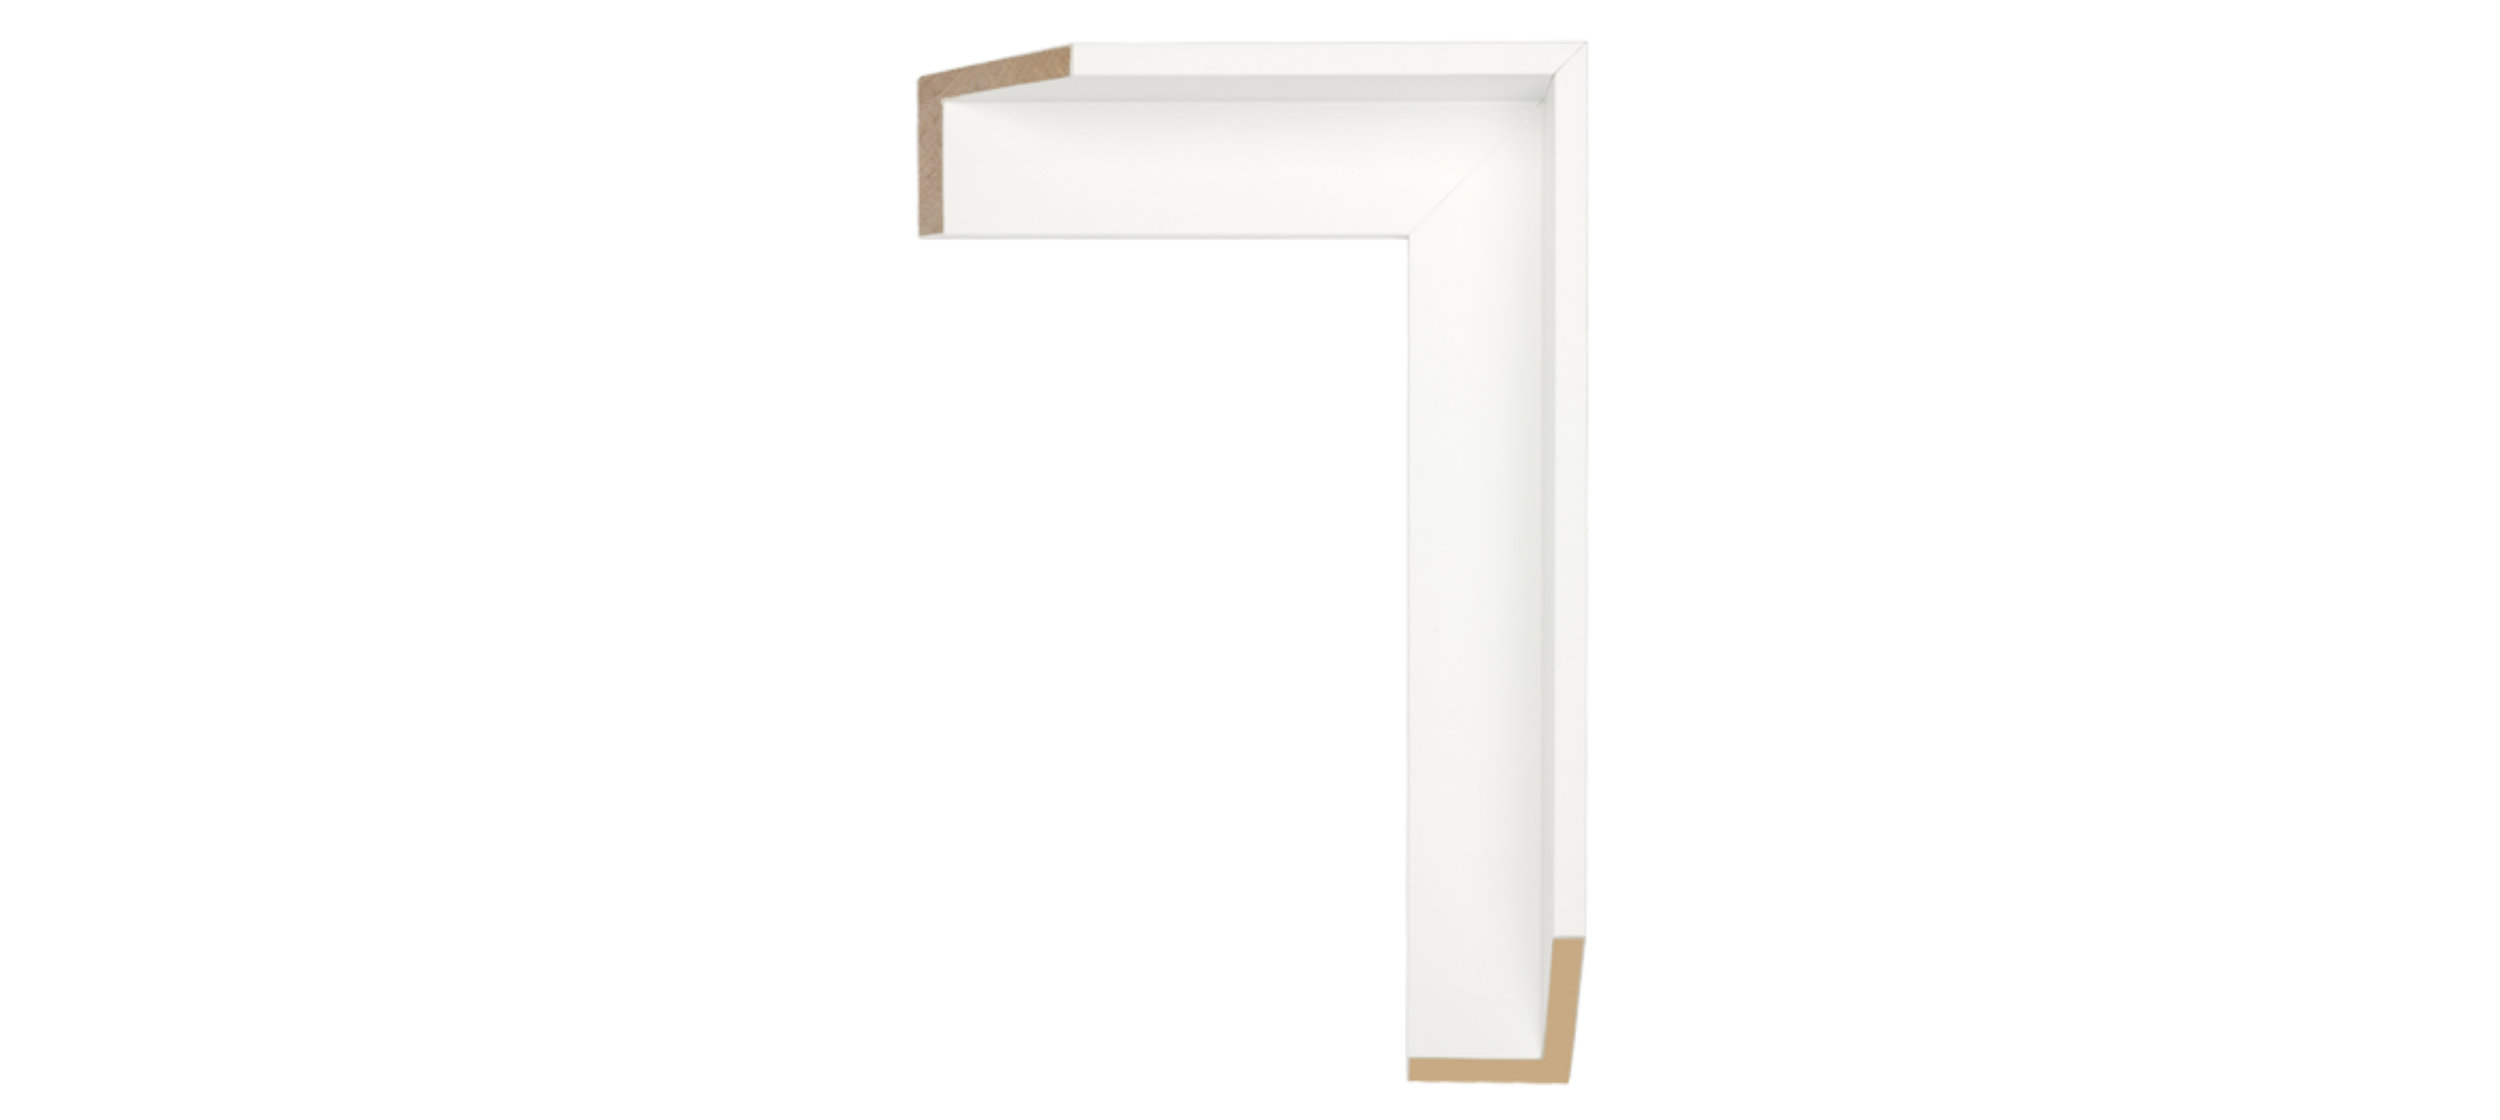 White Wood Float Frame